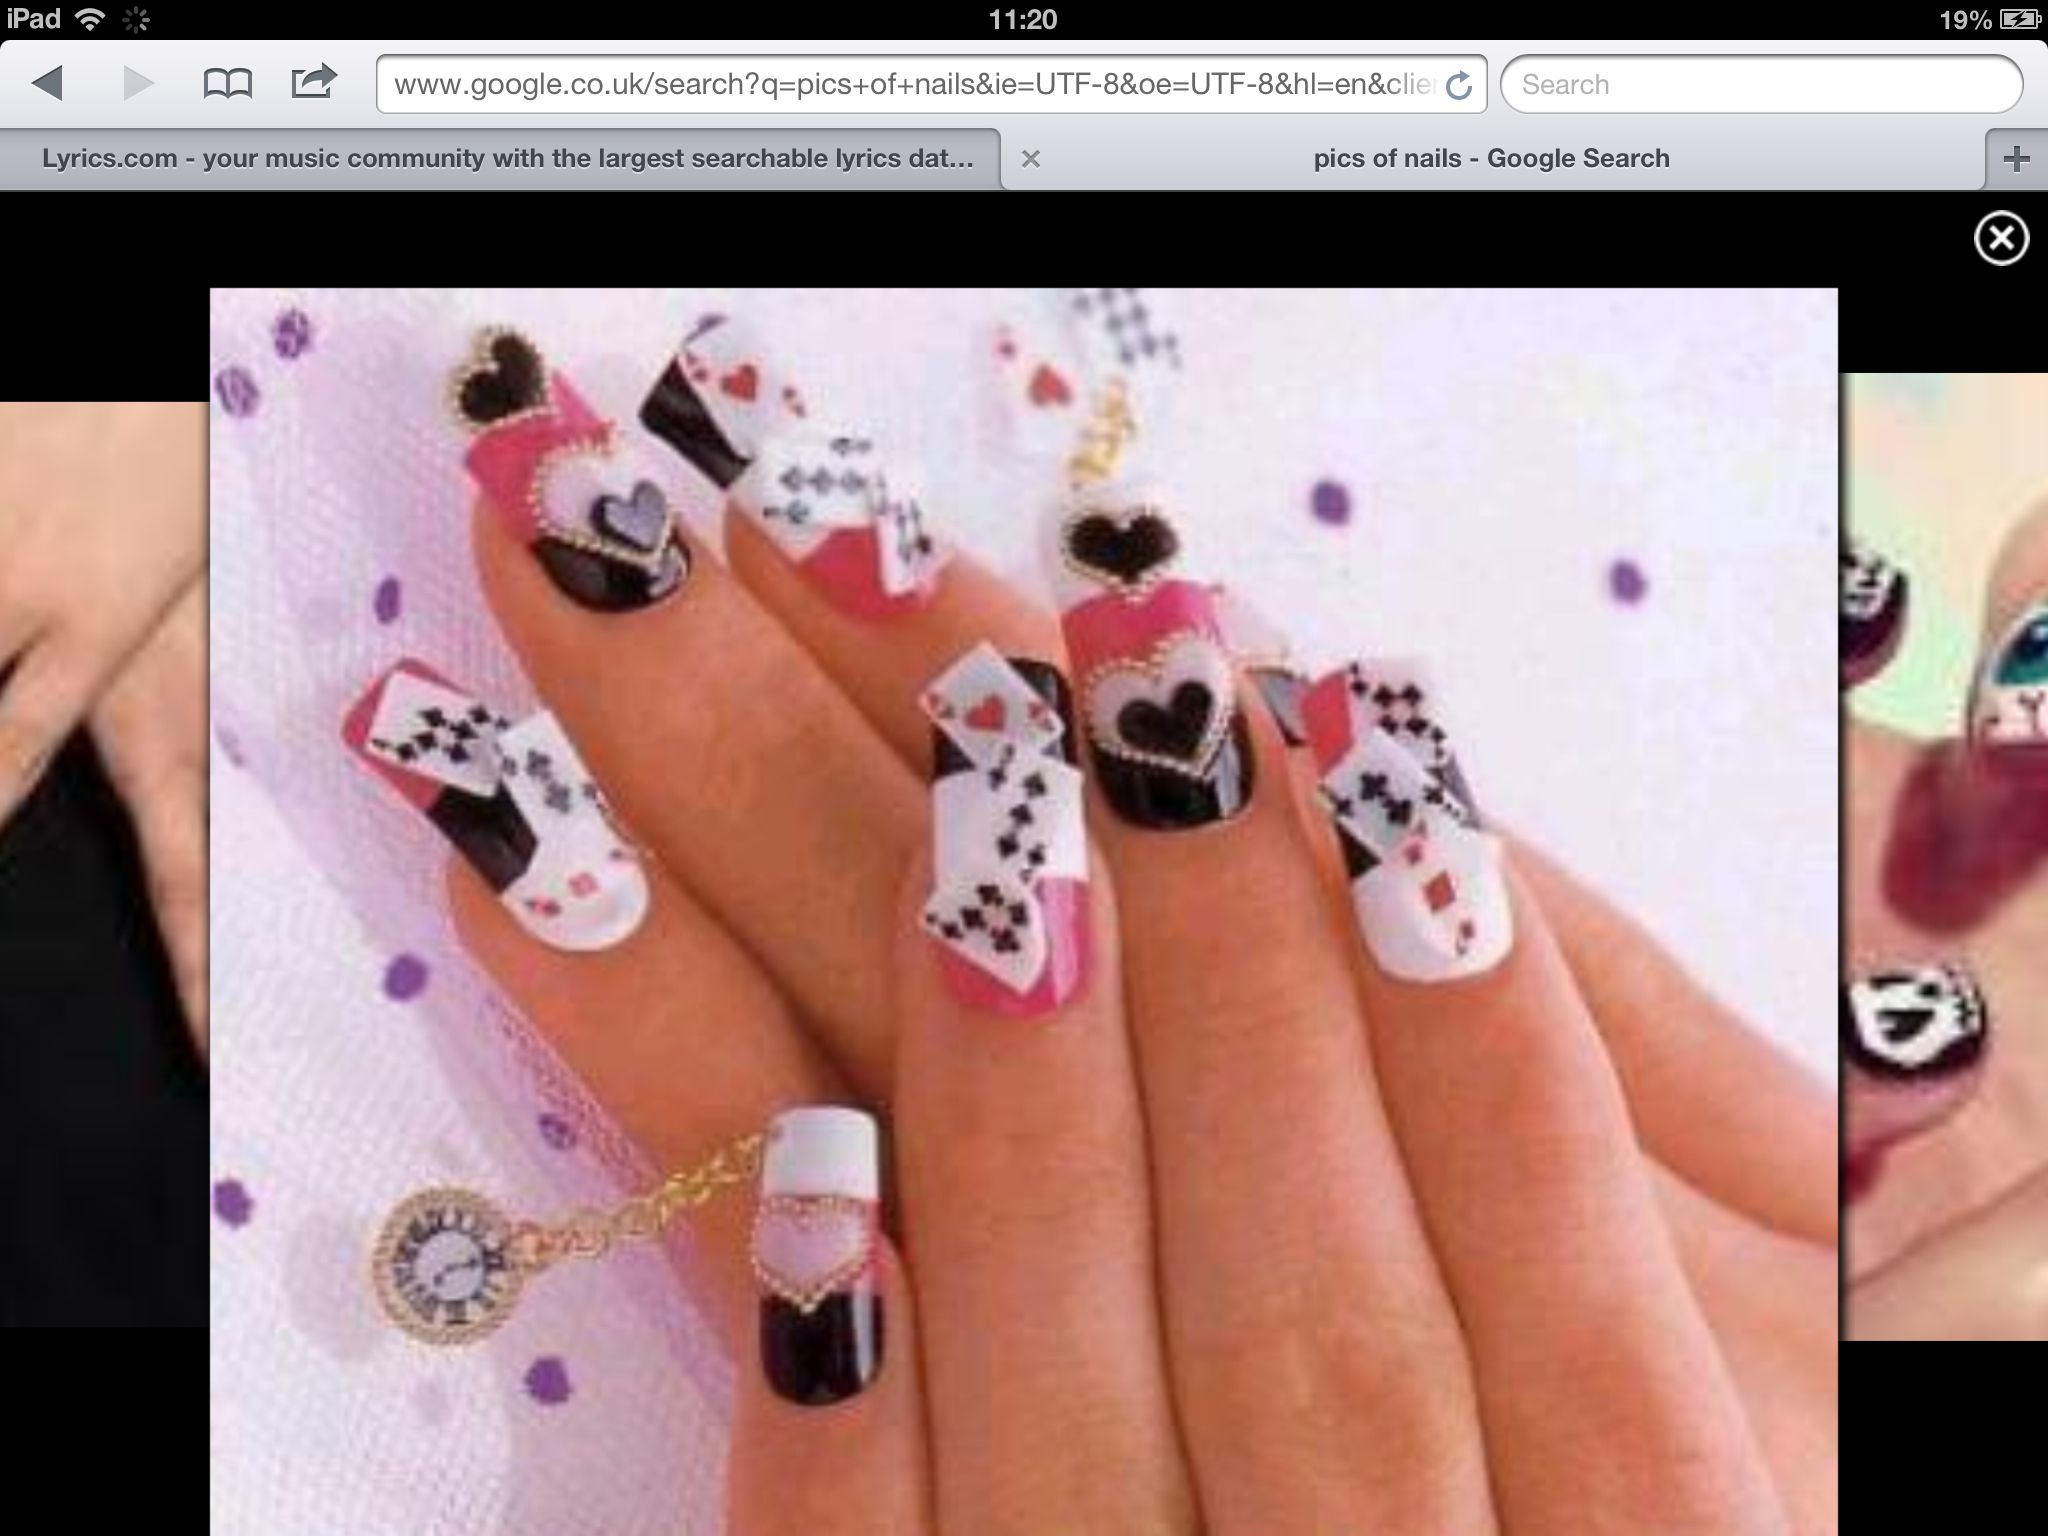 Pin by Honey Waters on NAILS! | Pinterest